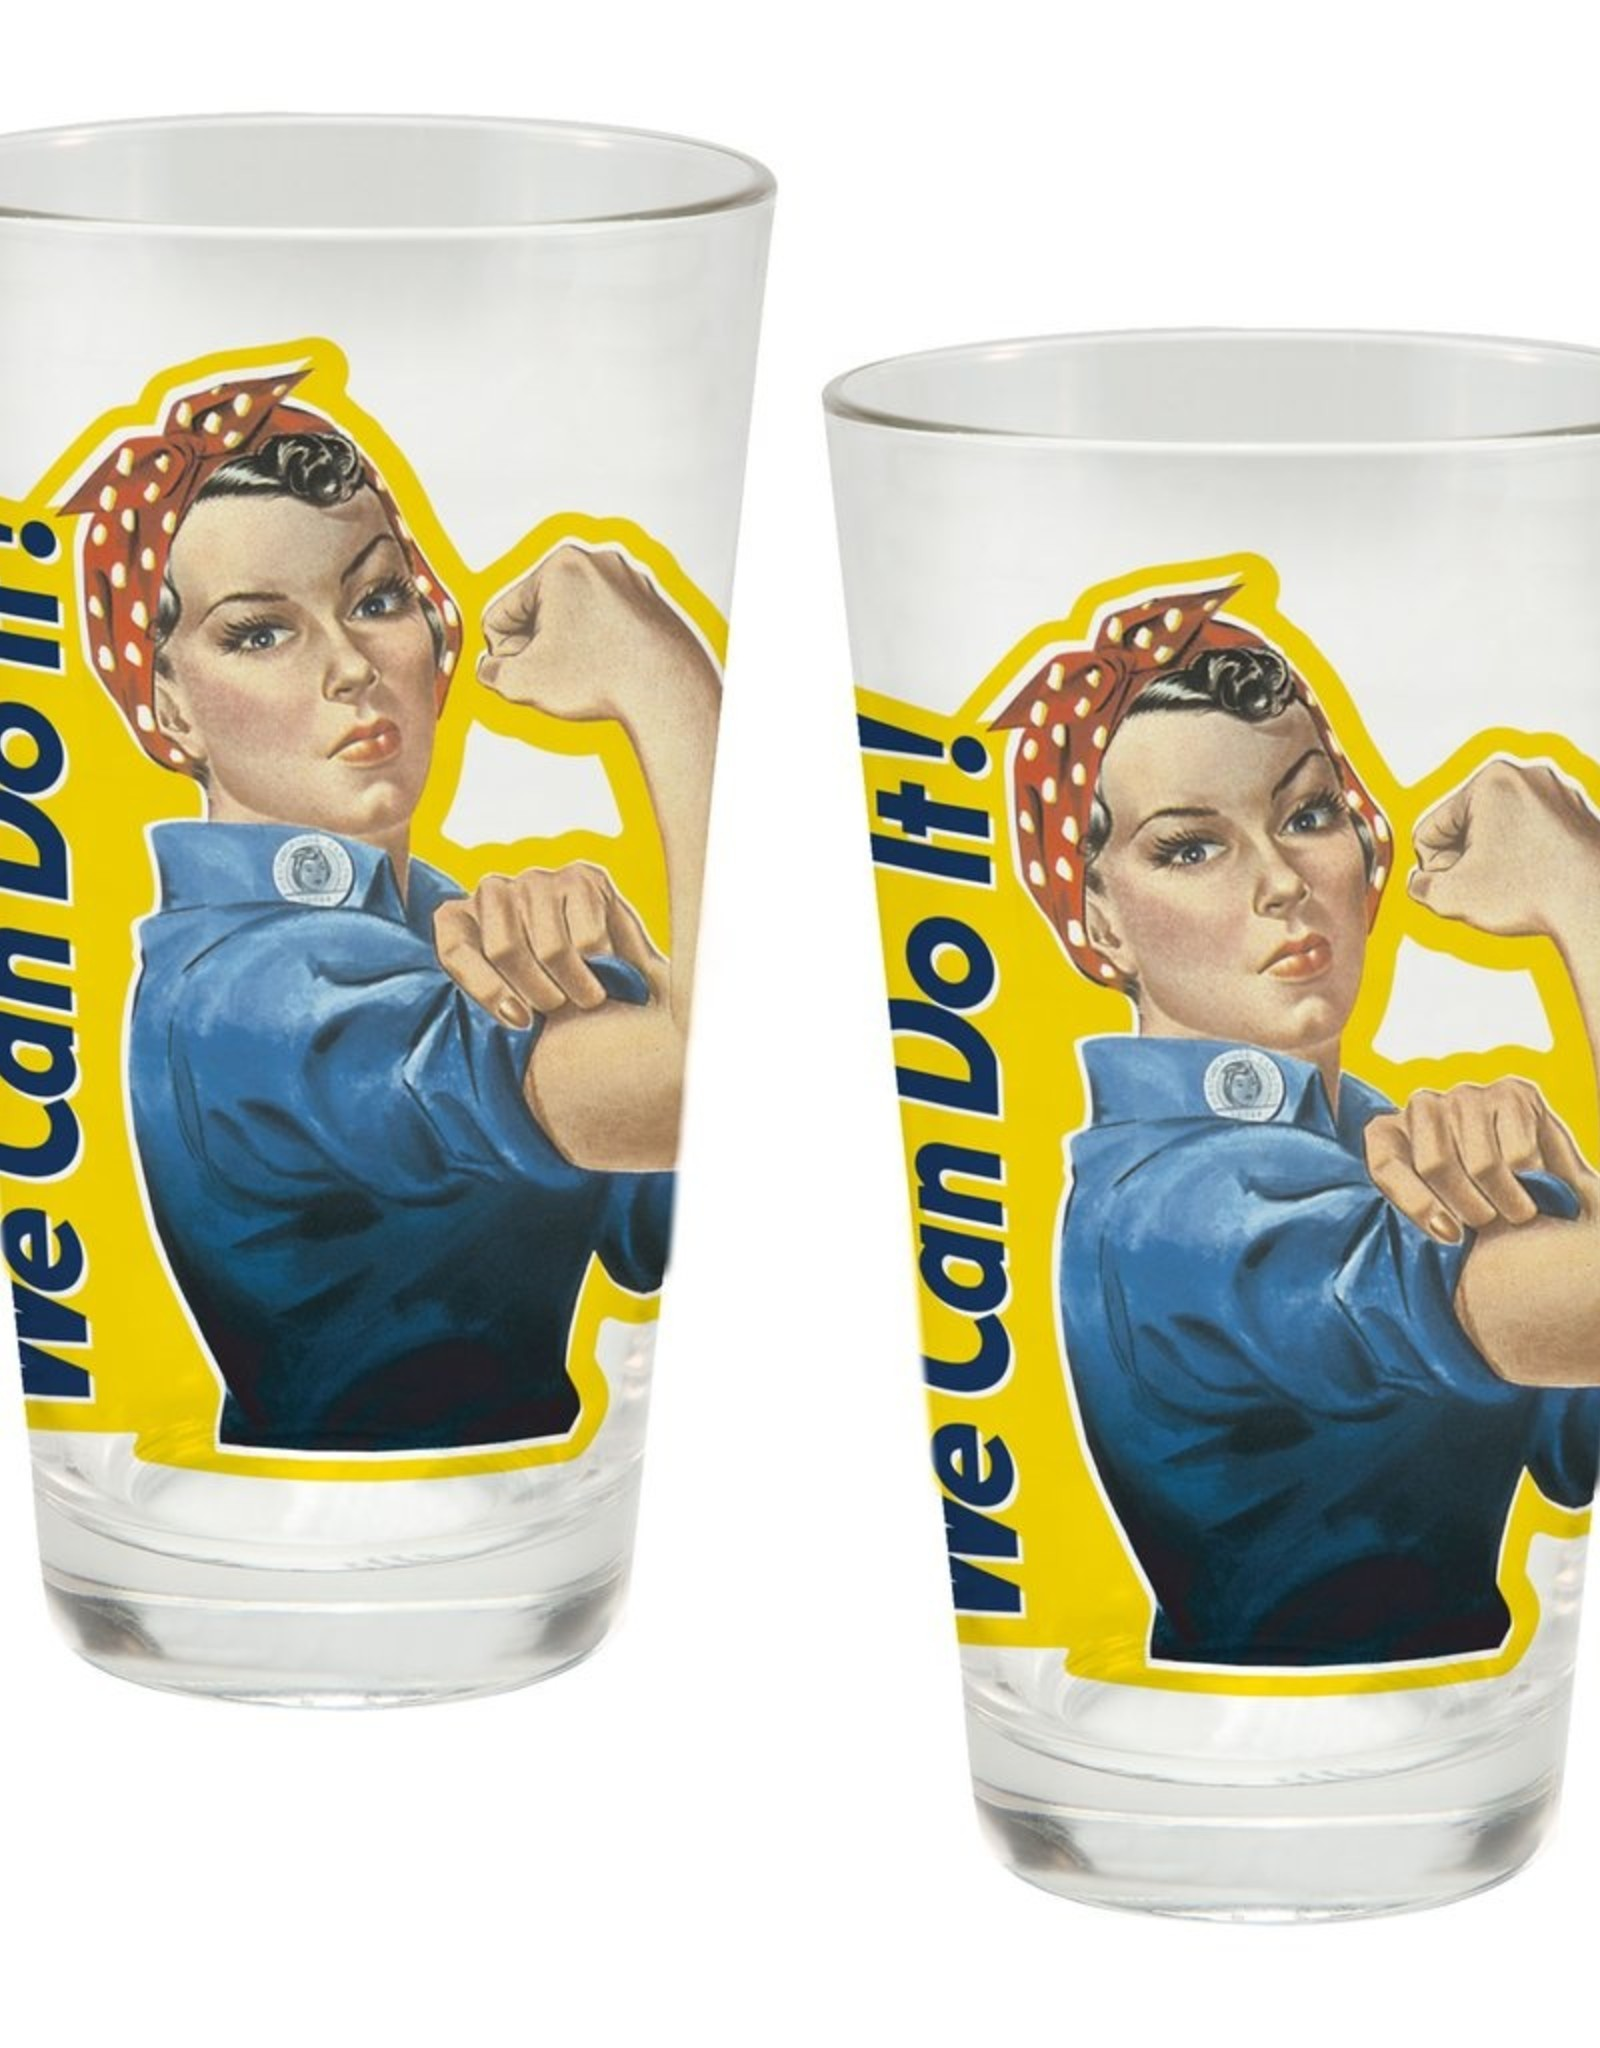 Vandor Rosie The Riveter Glass Set 2 pc 16 oz.